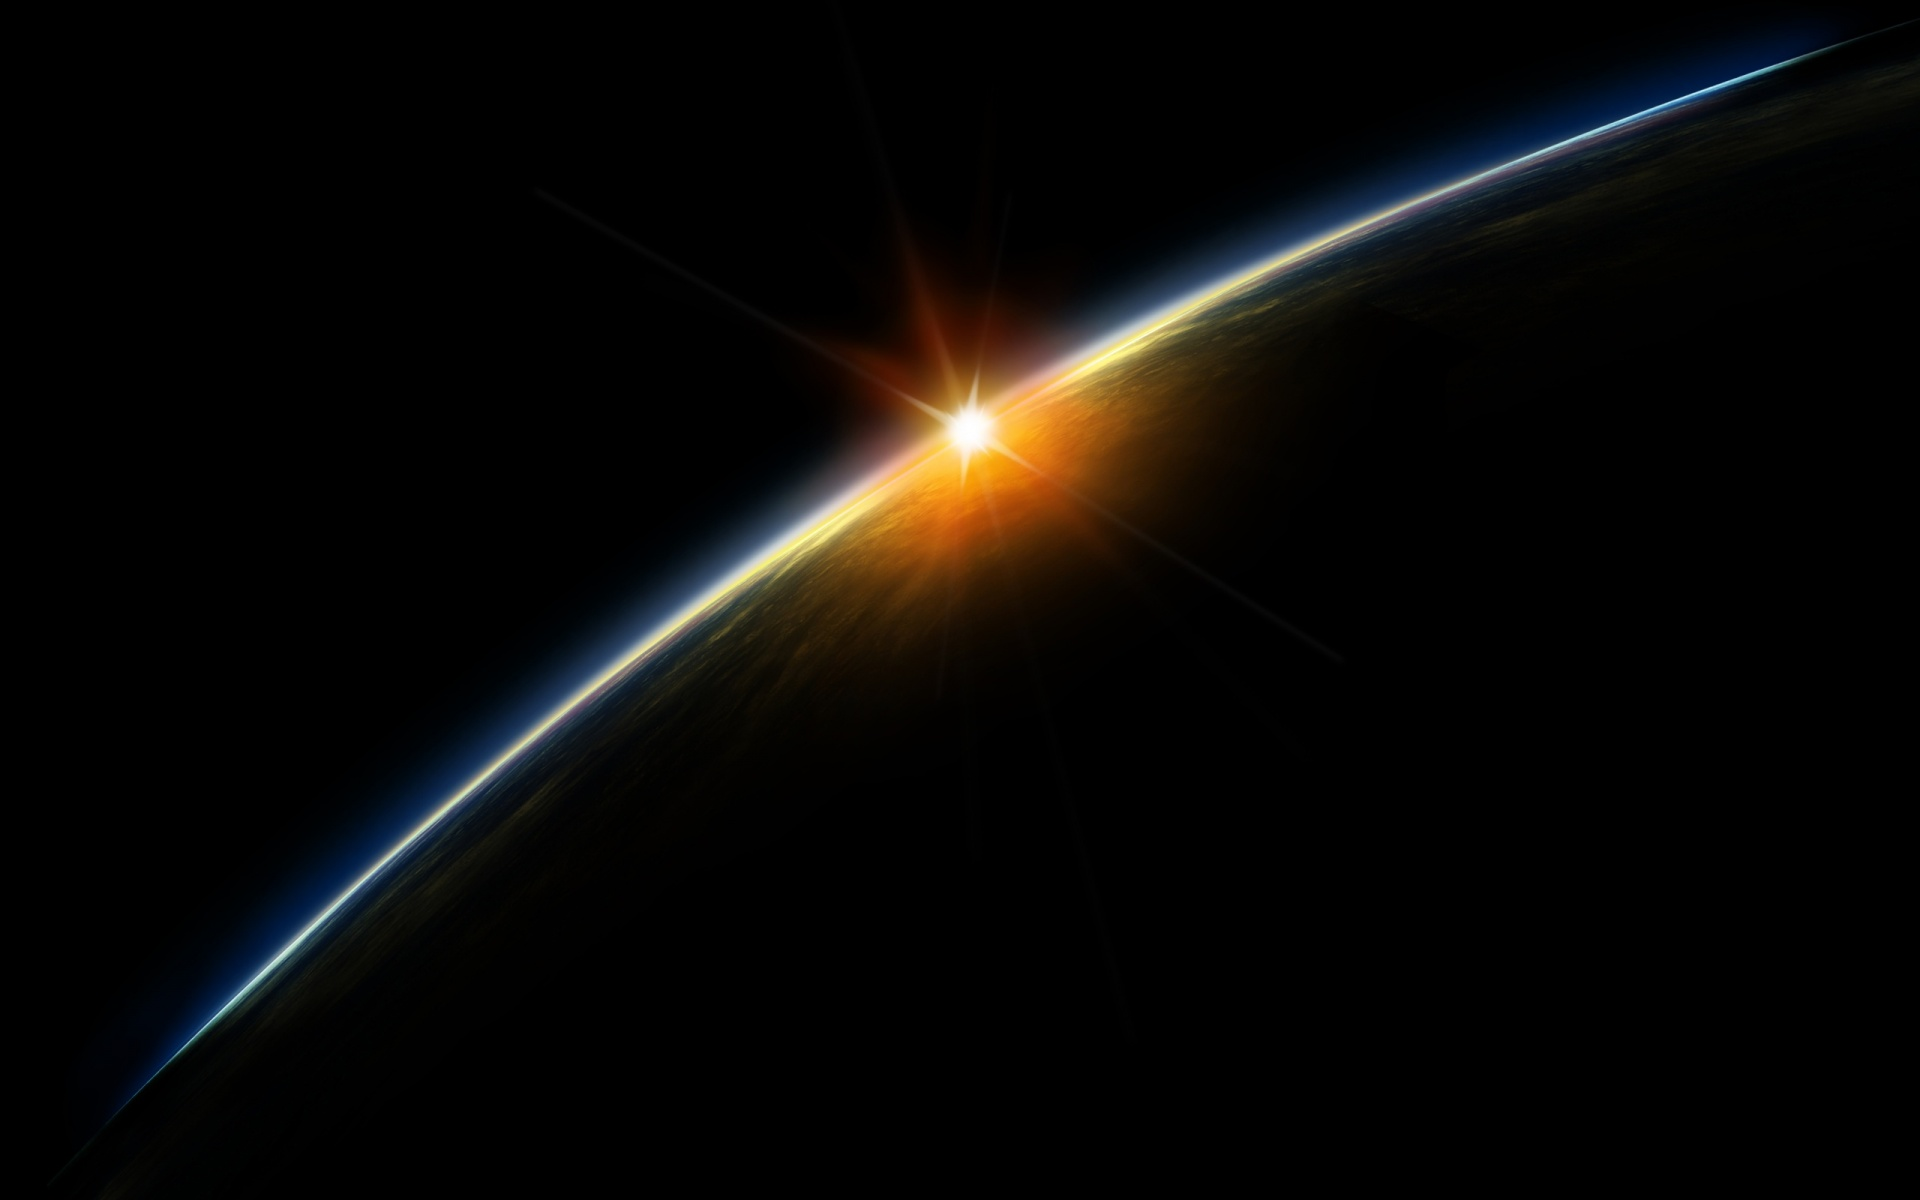 cool space wallpapers background backgrounds sunrise twitter 1920x1200